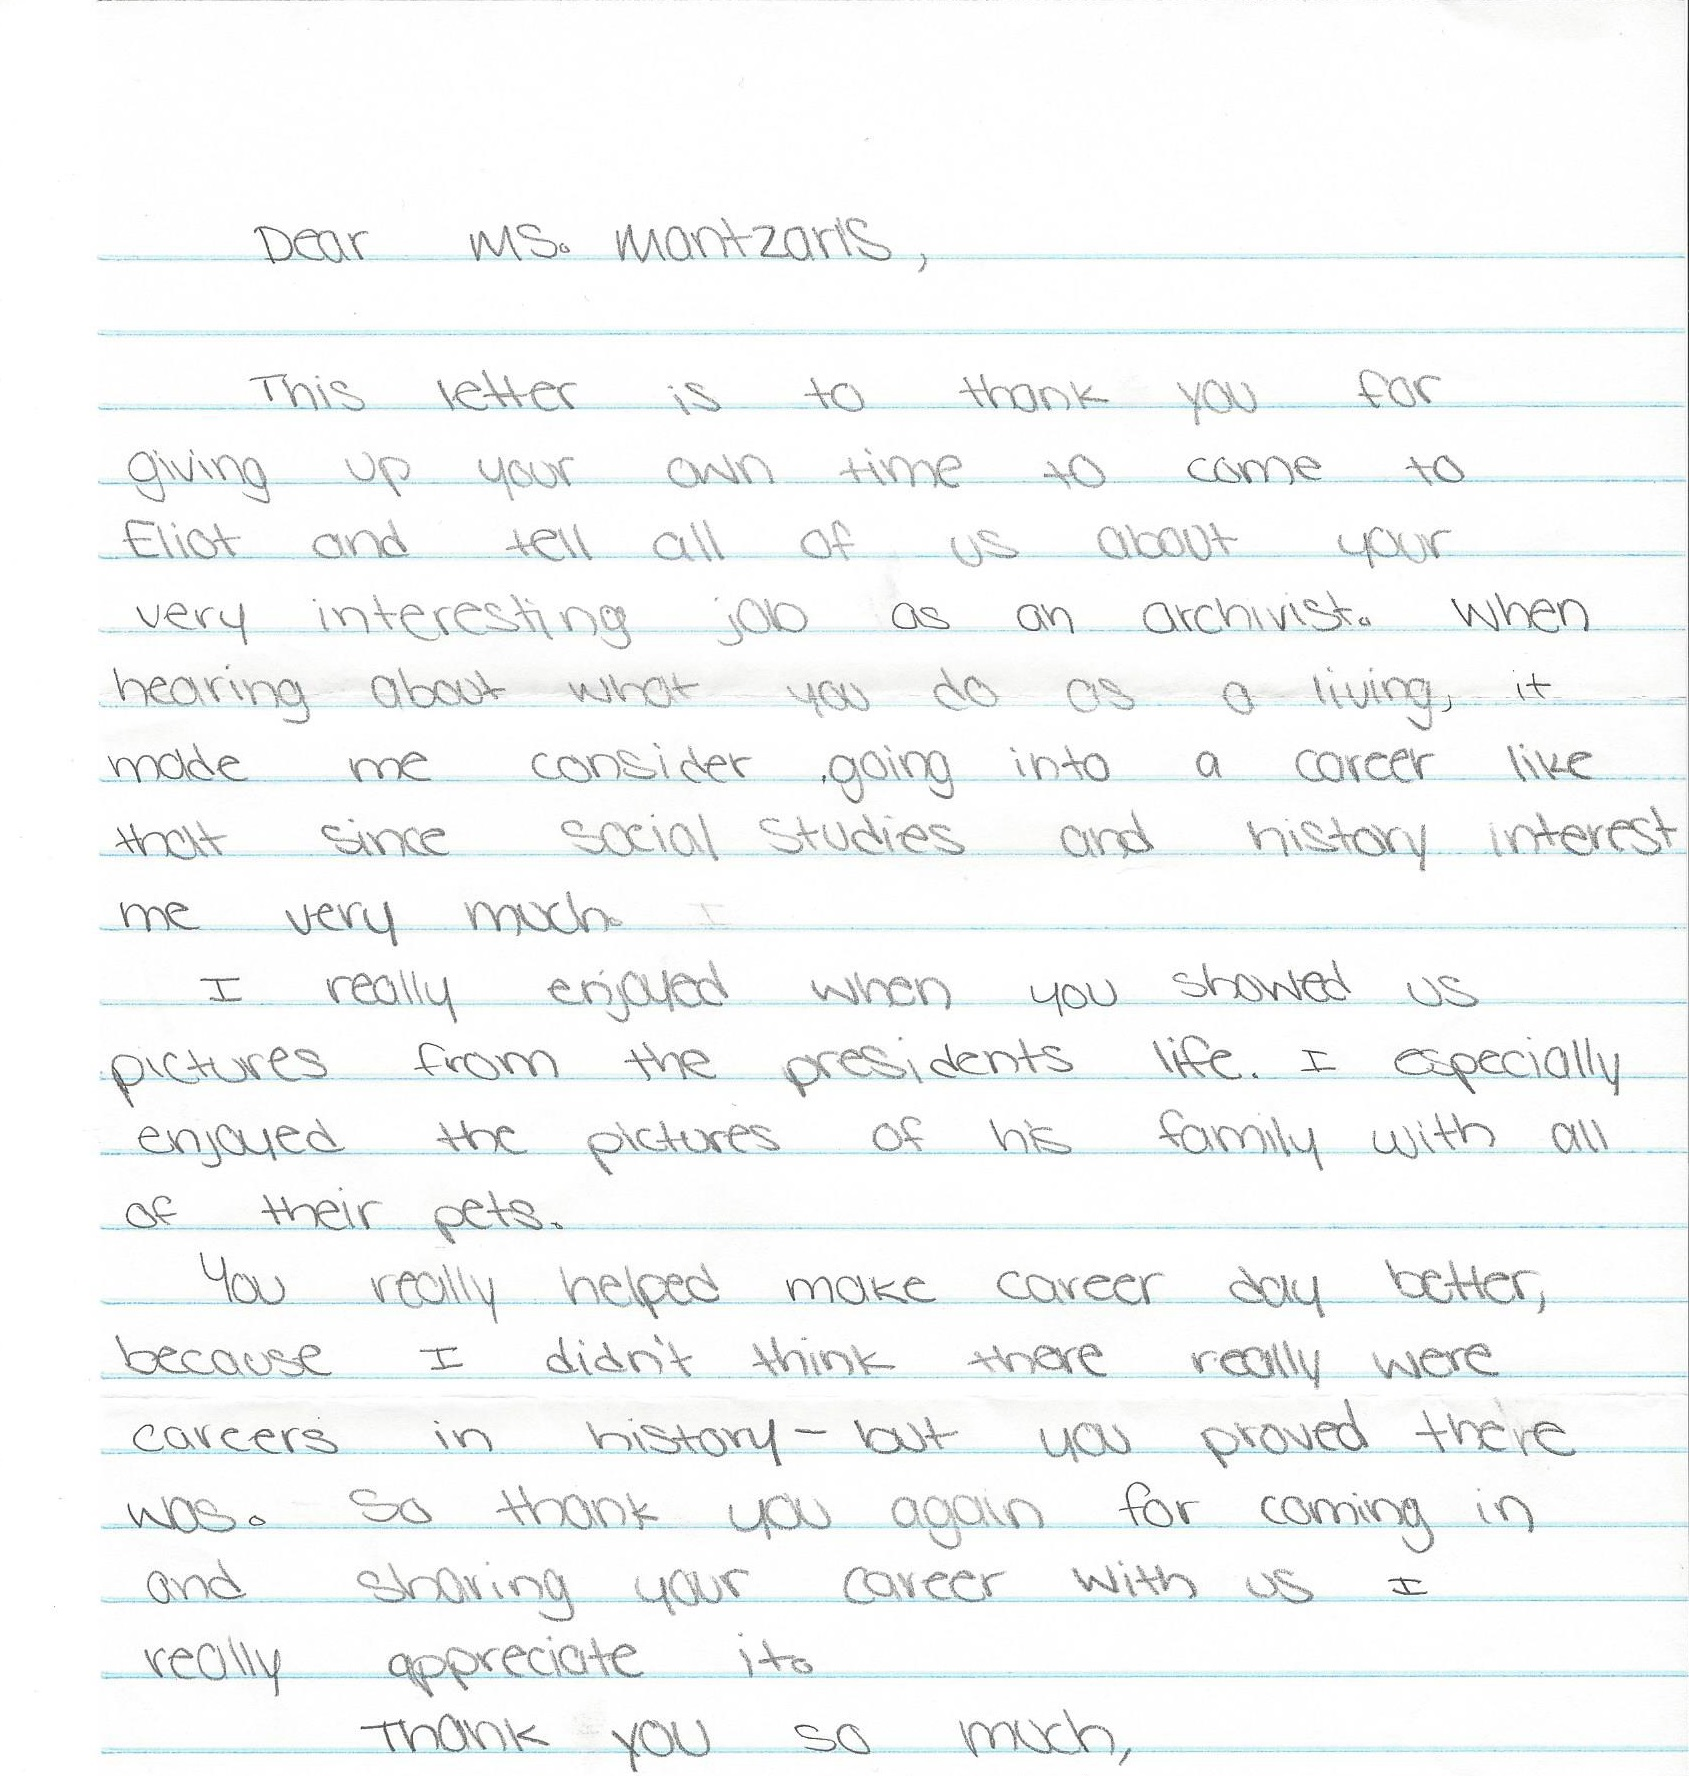 Career Day With Middle School Students An Archivists Report